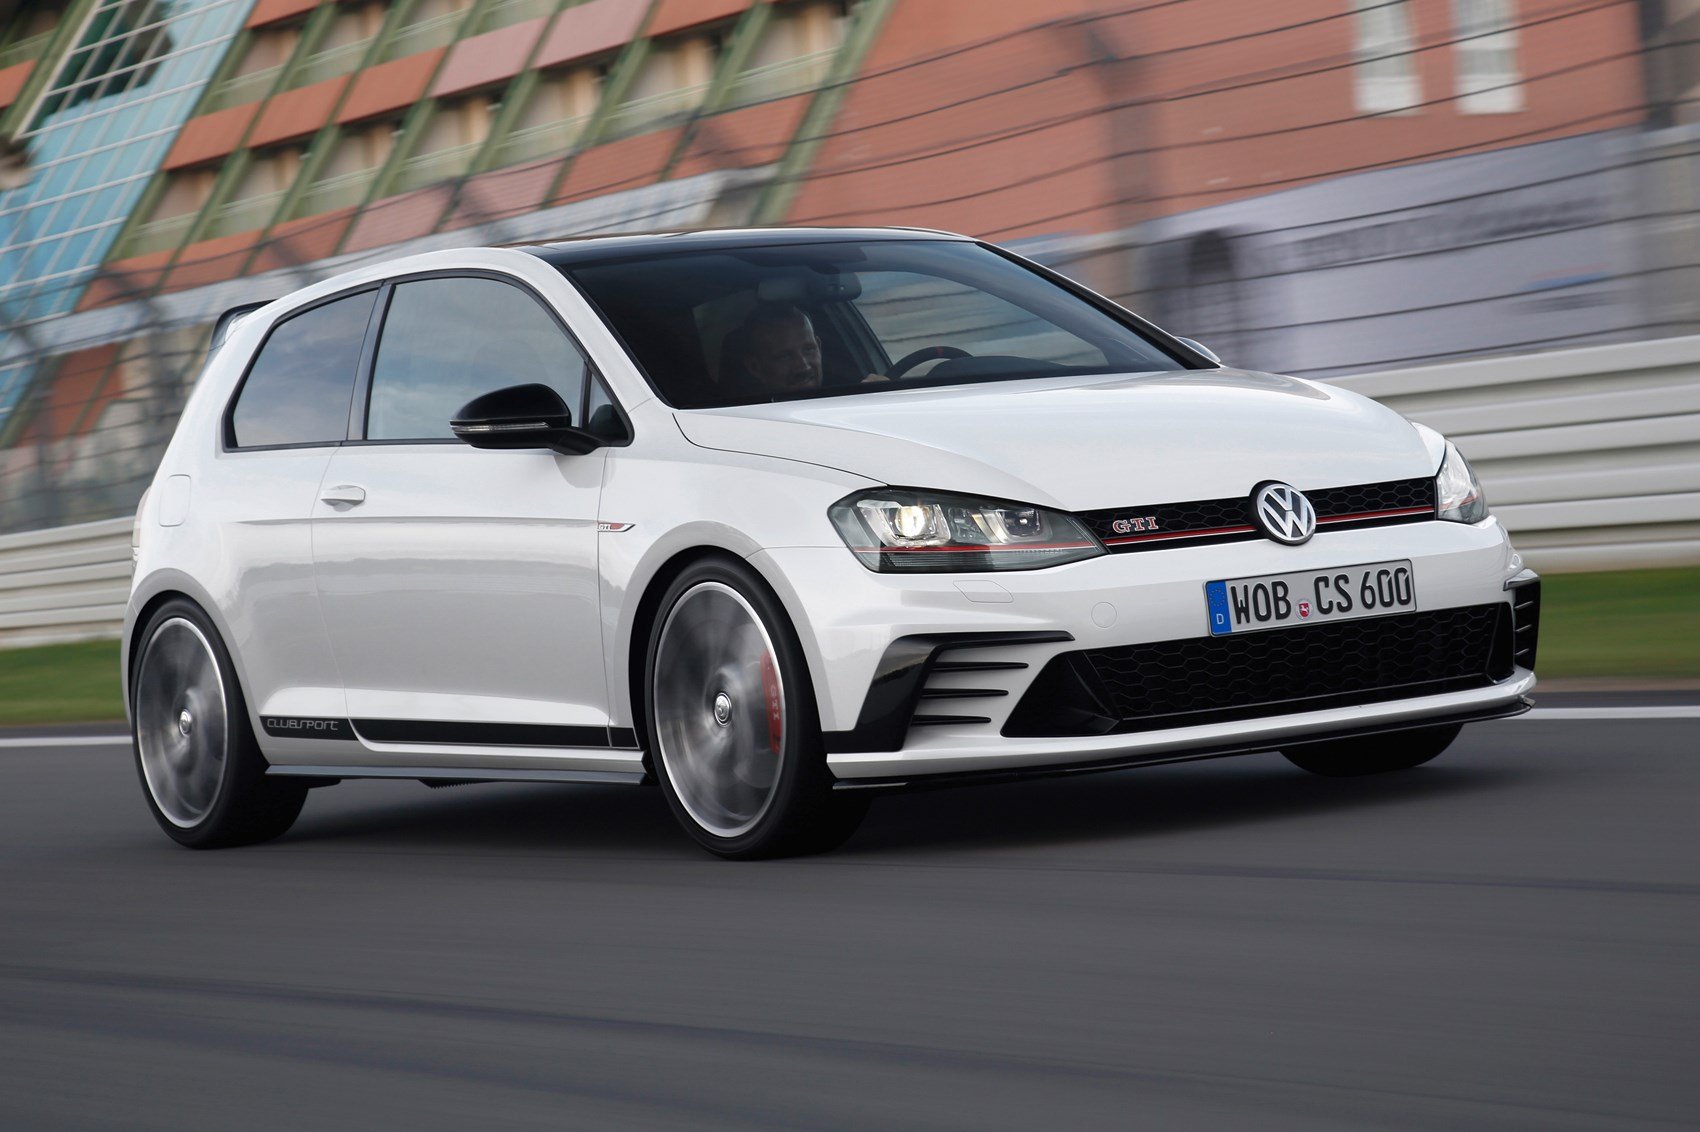 Wing Said To Provide Meaningful Downforce Although Vw S Being Coy With Exact Figures